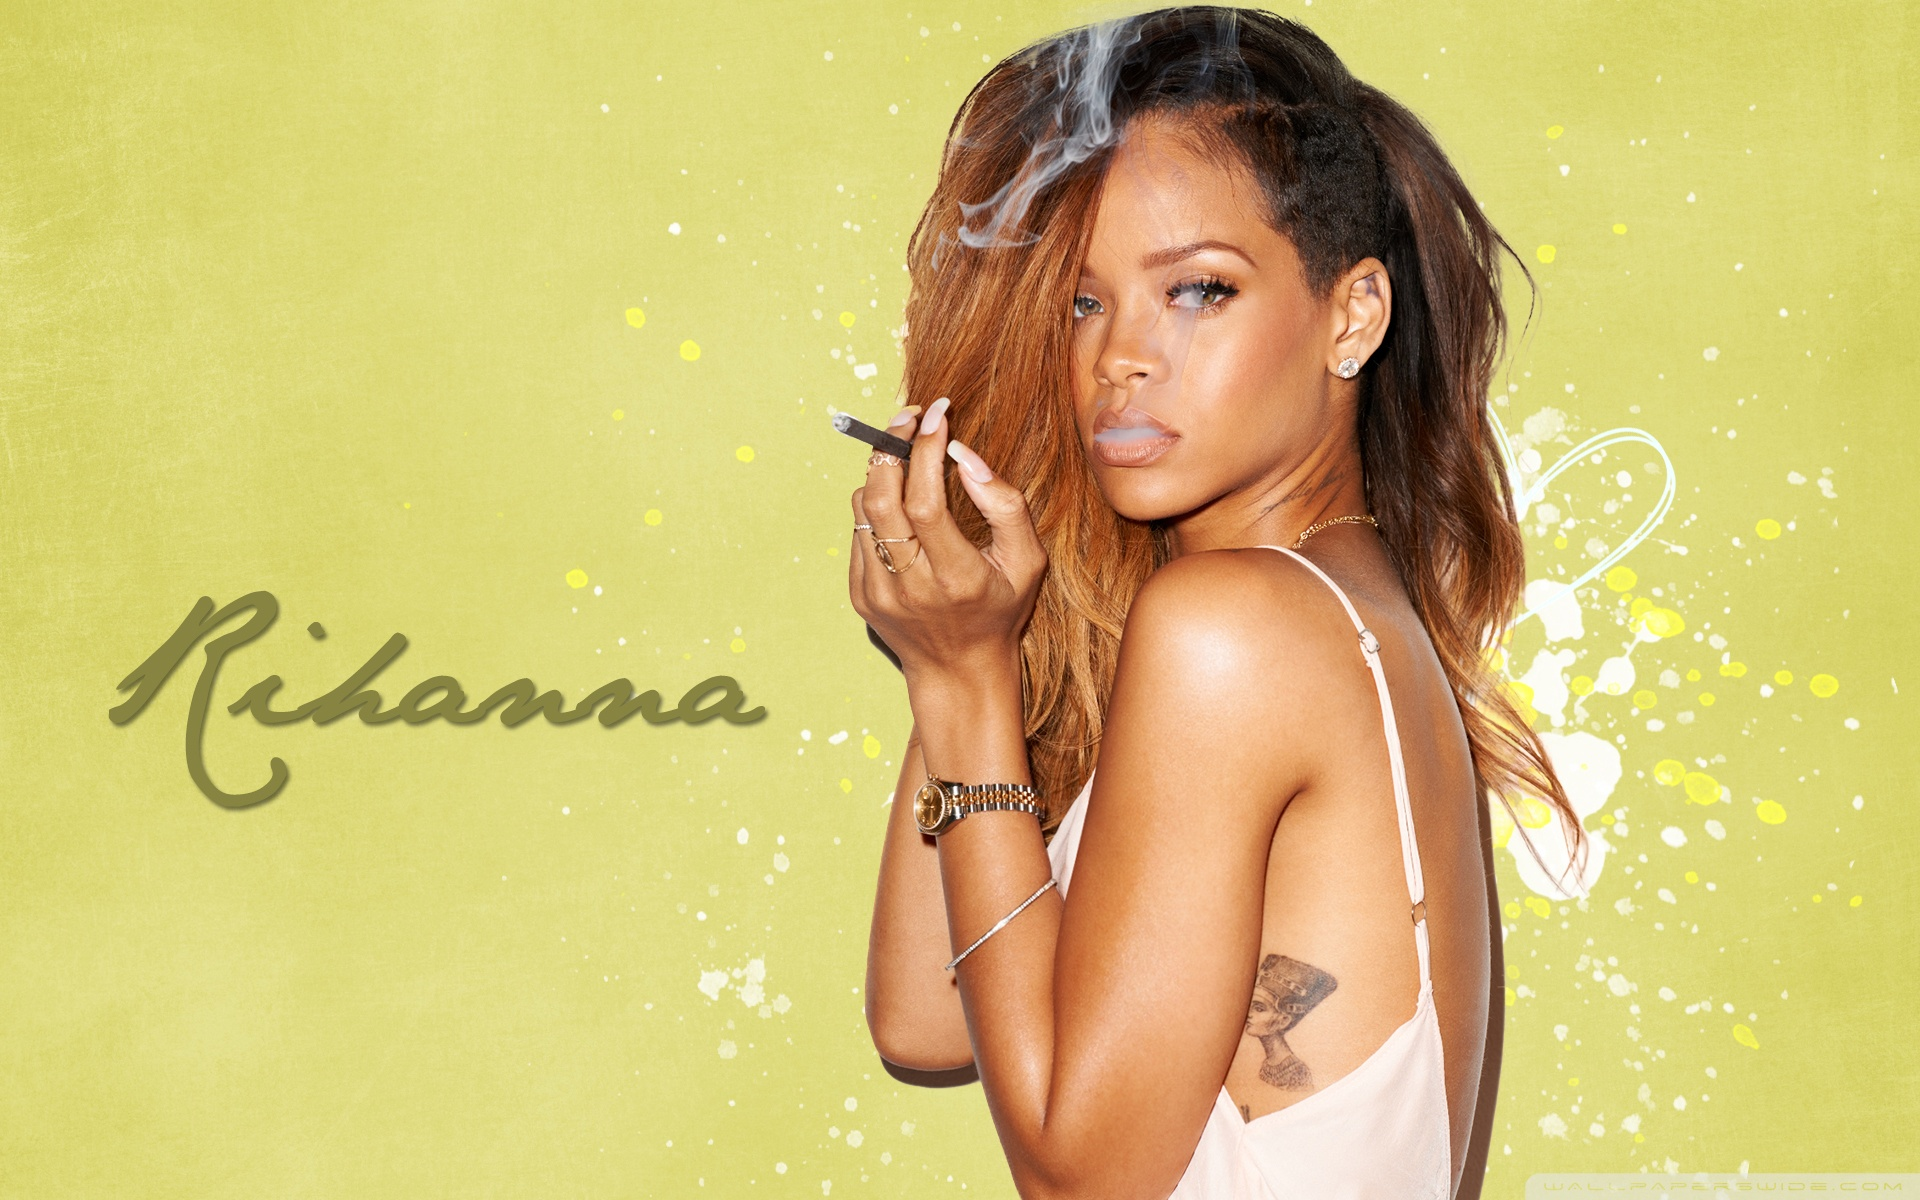 Wallpaper Of Rihanna